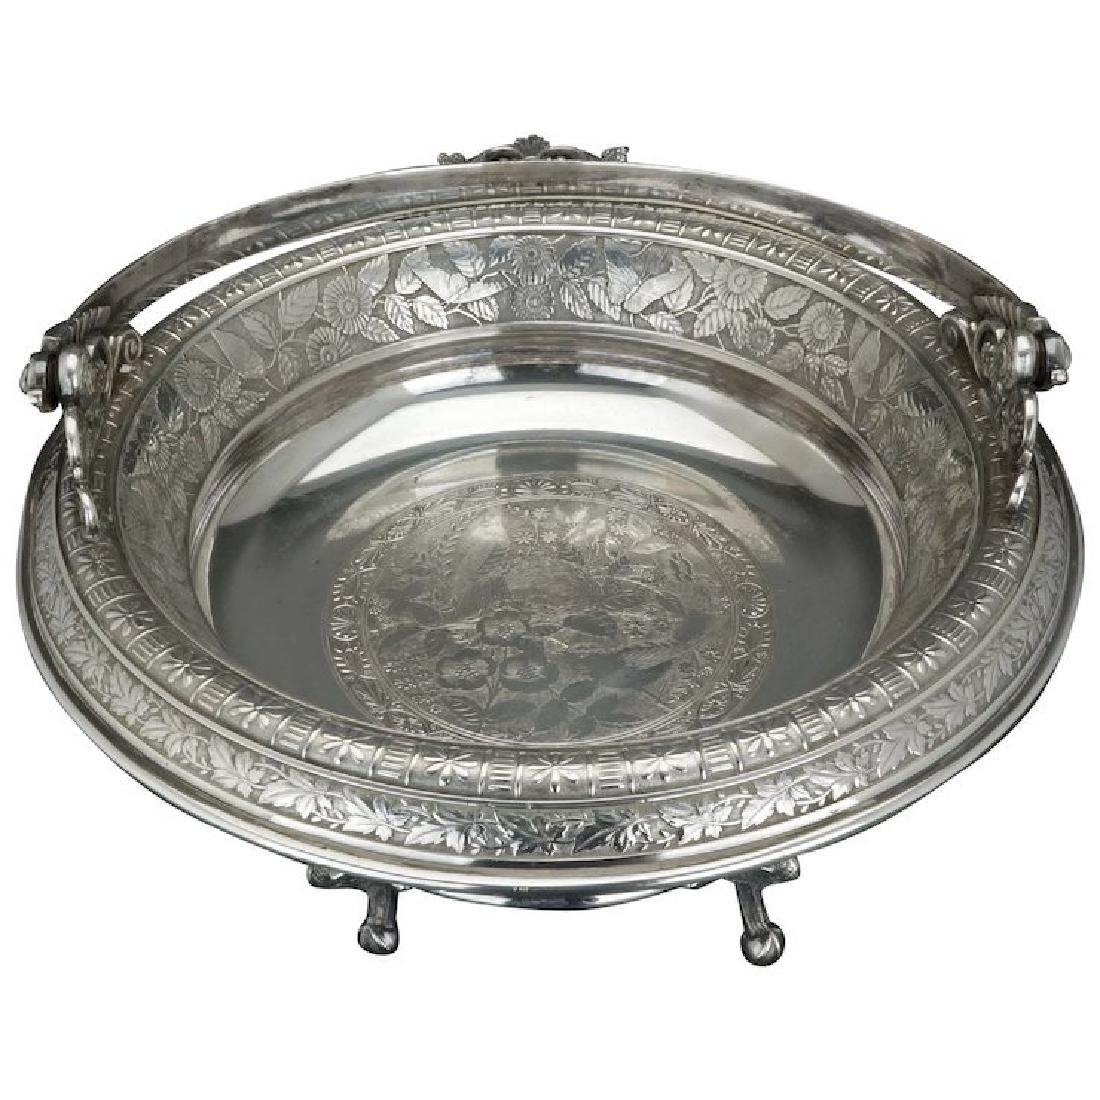 Victorian silver plate cake basket by Rogers and